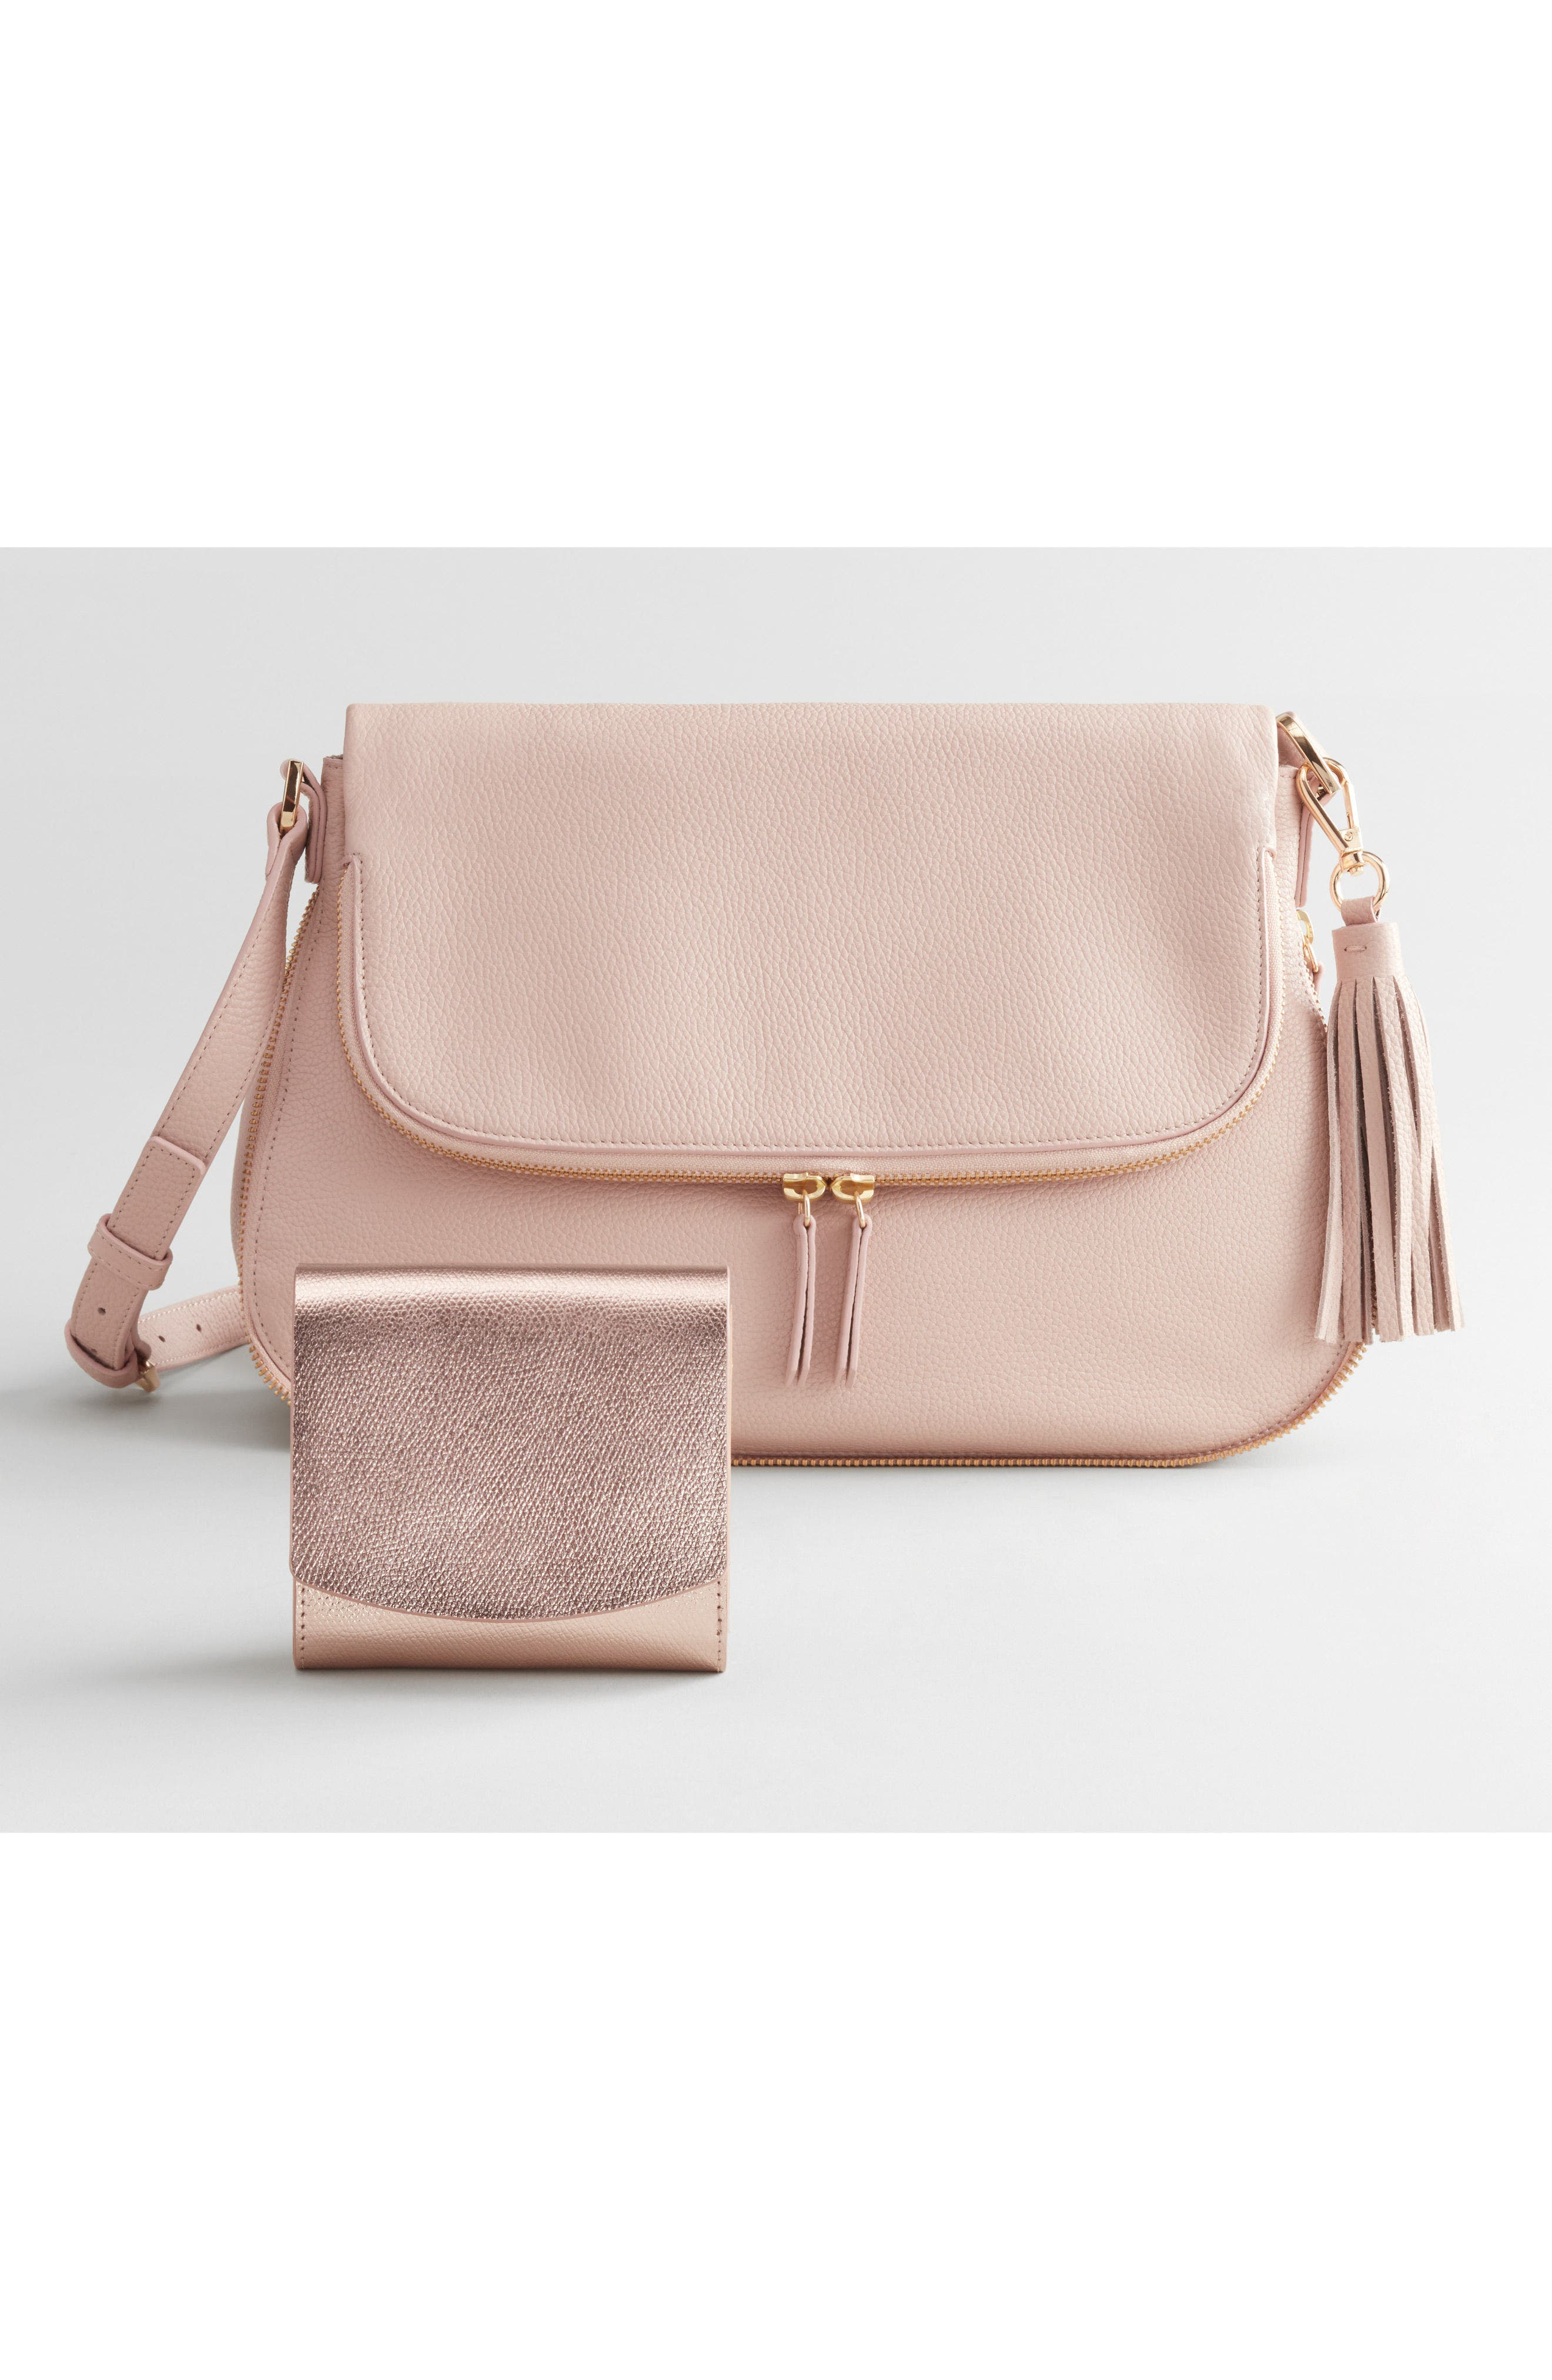 Kara Leather Expandable Crossbody Bag,                             Alternate thumbnail 9, color,                             PINK ROSECLOUD